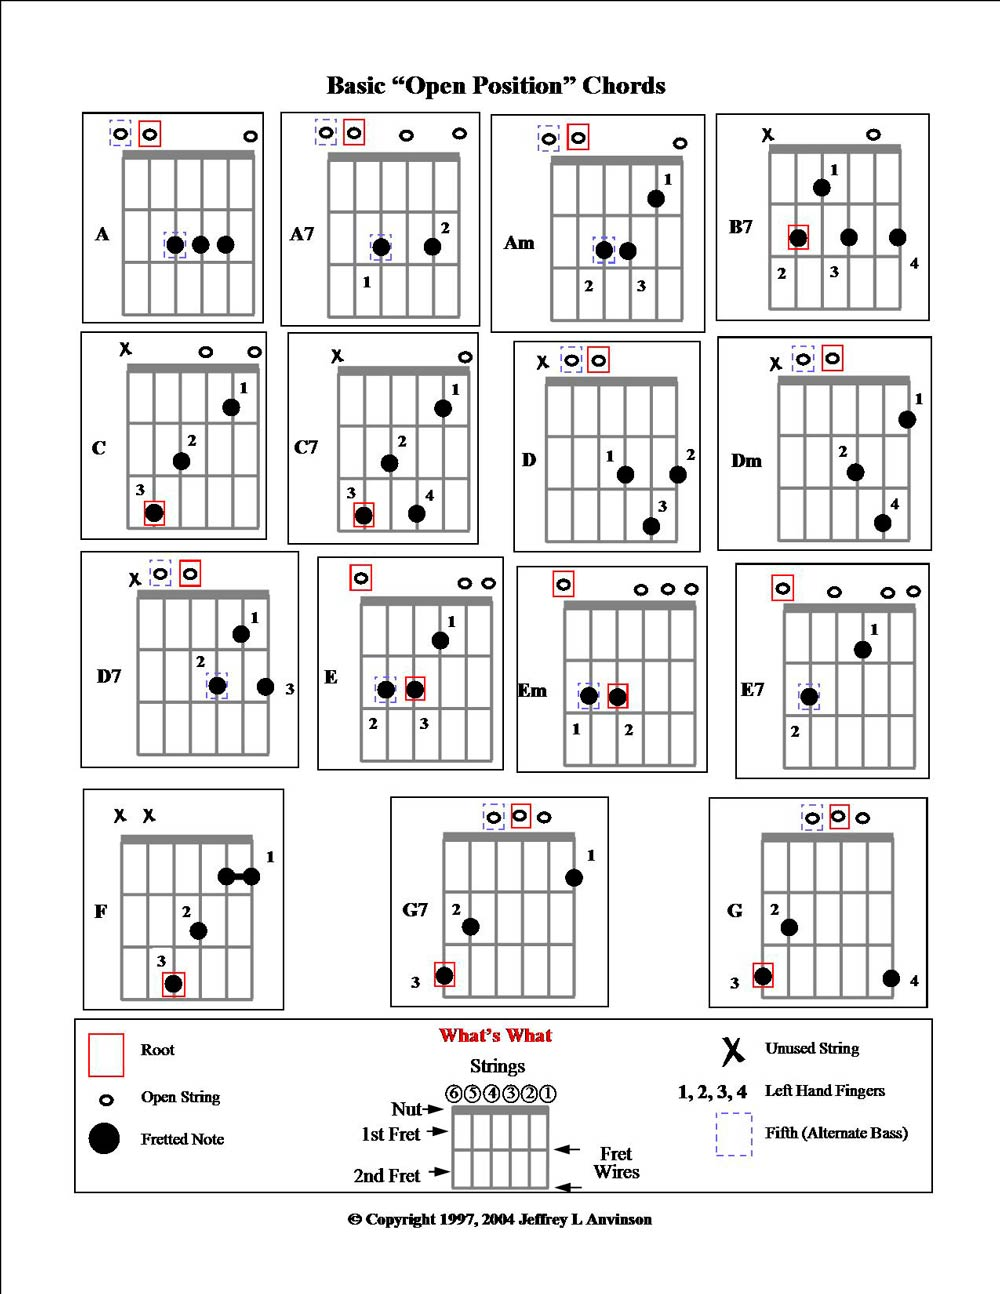 Basic Open Position Chords - copyright 1997, 2001, Jeffrey L Anvinson